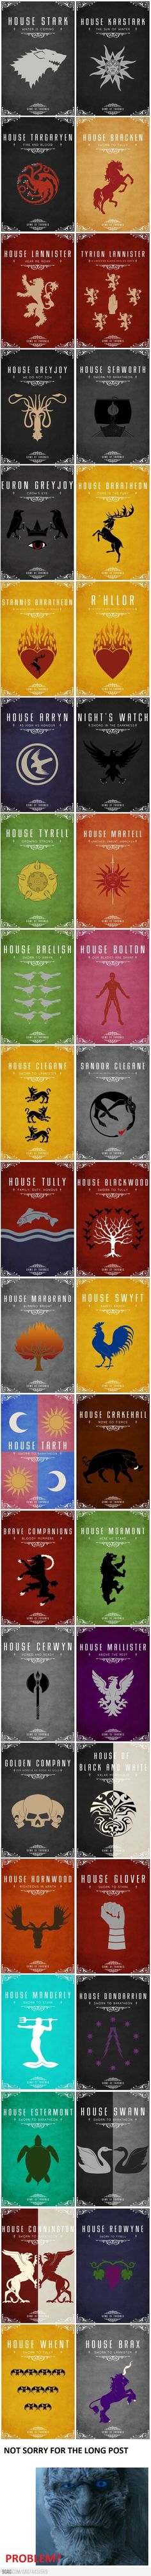 All the Houses in Game Of Thrones.